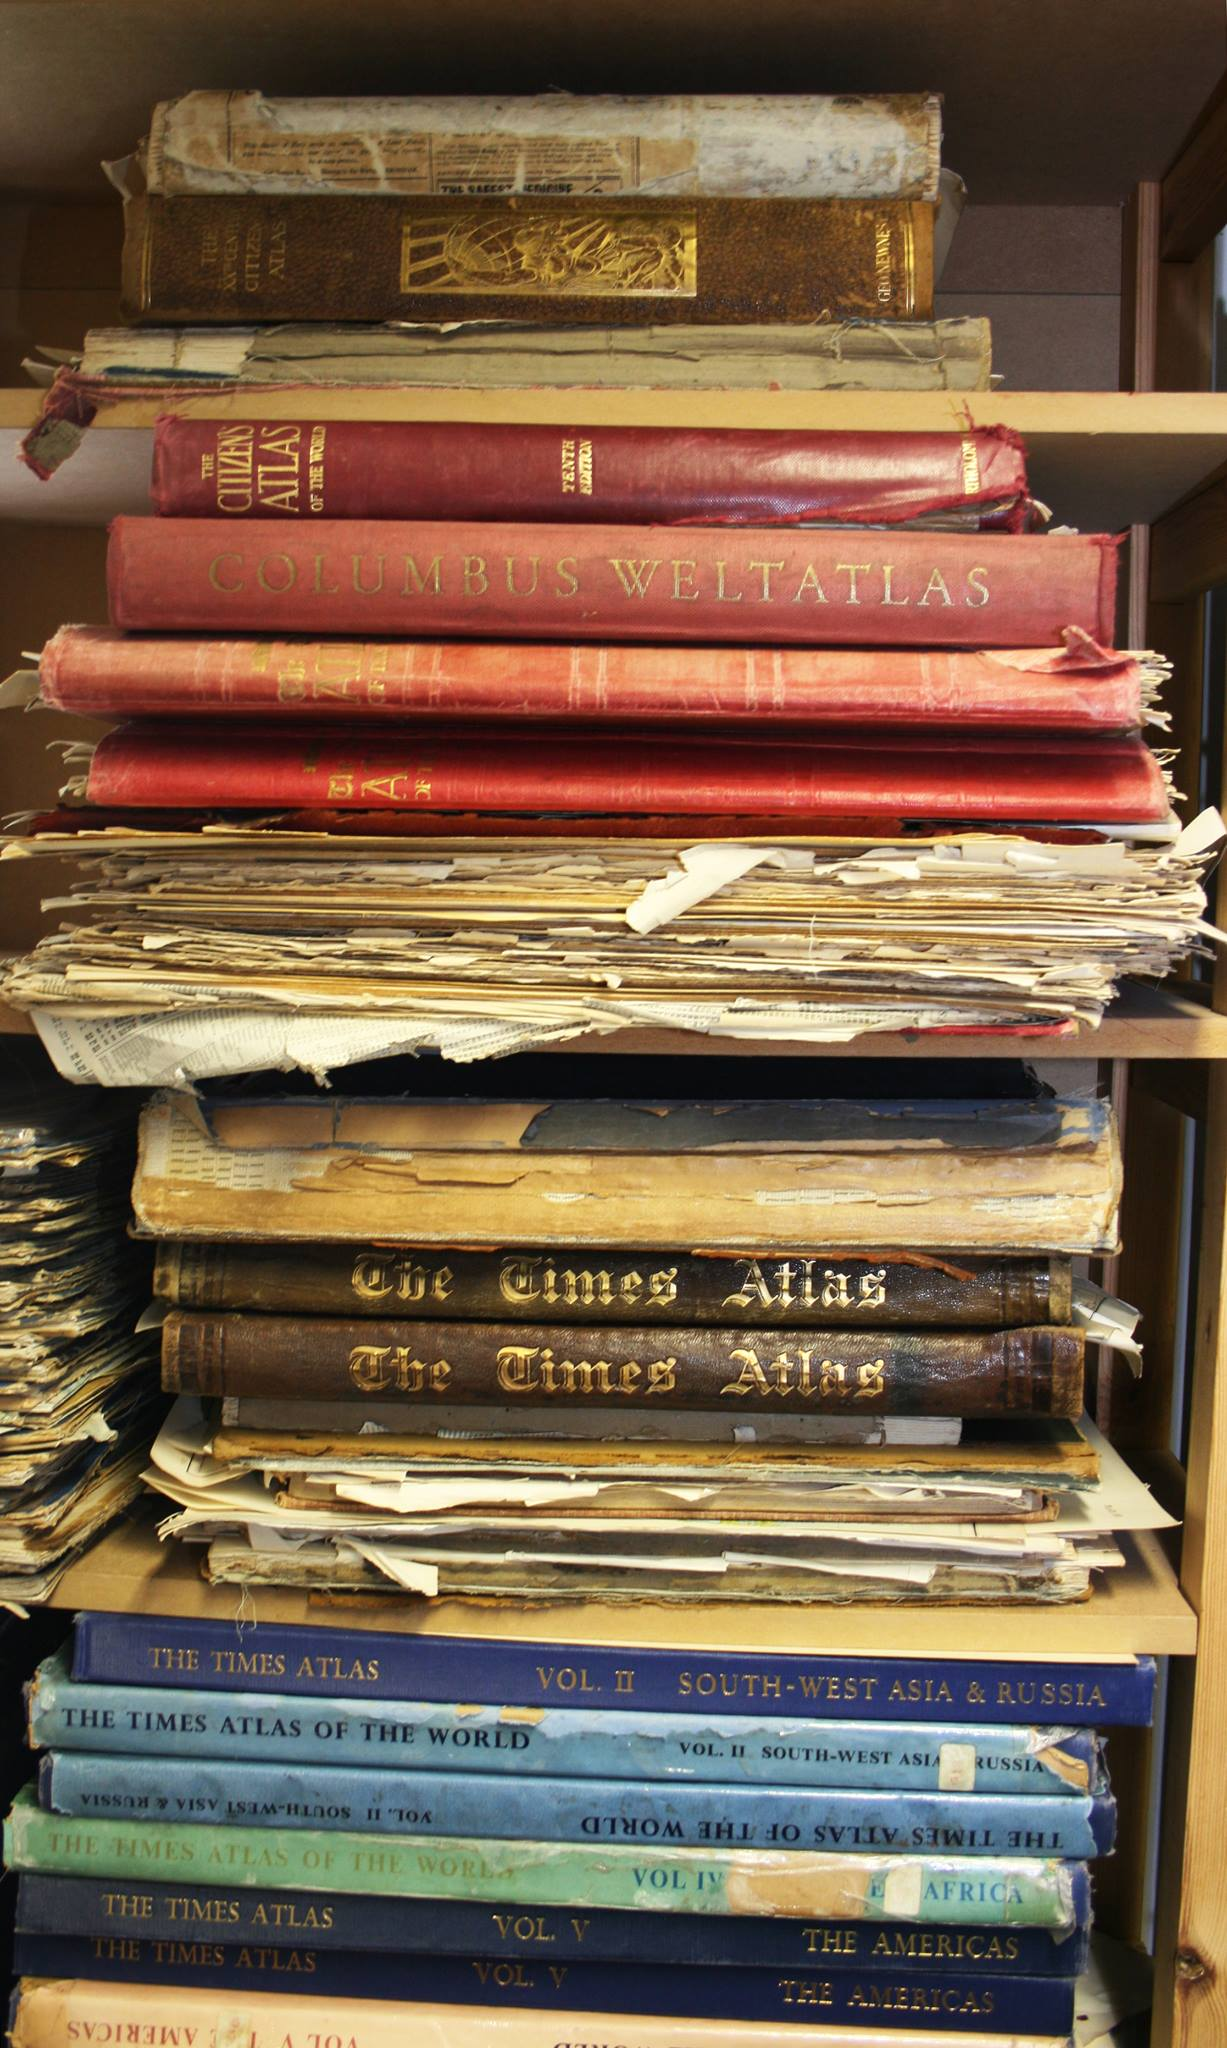 Pile of old antique atlases.